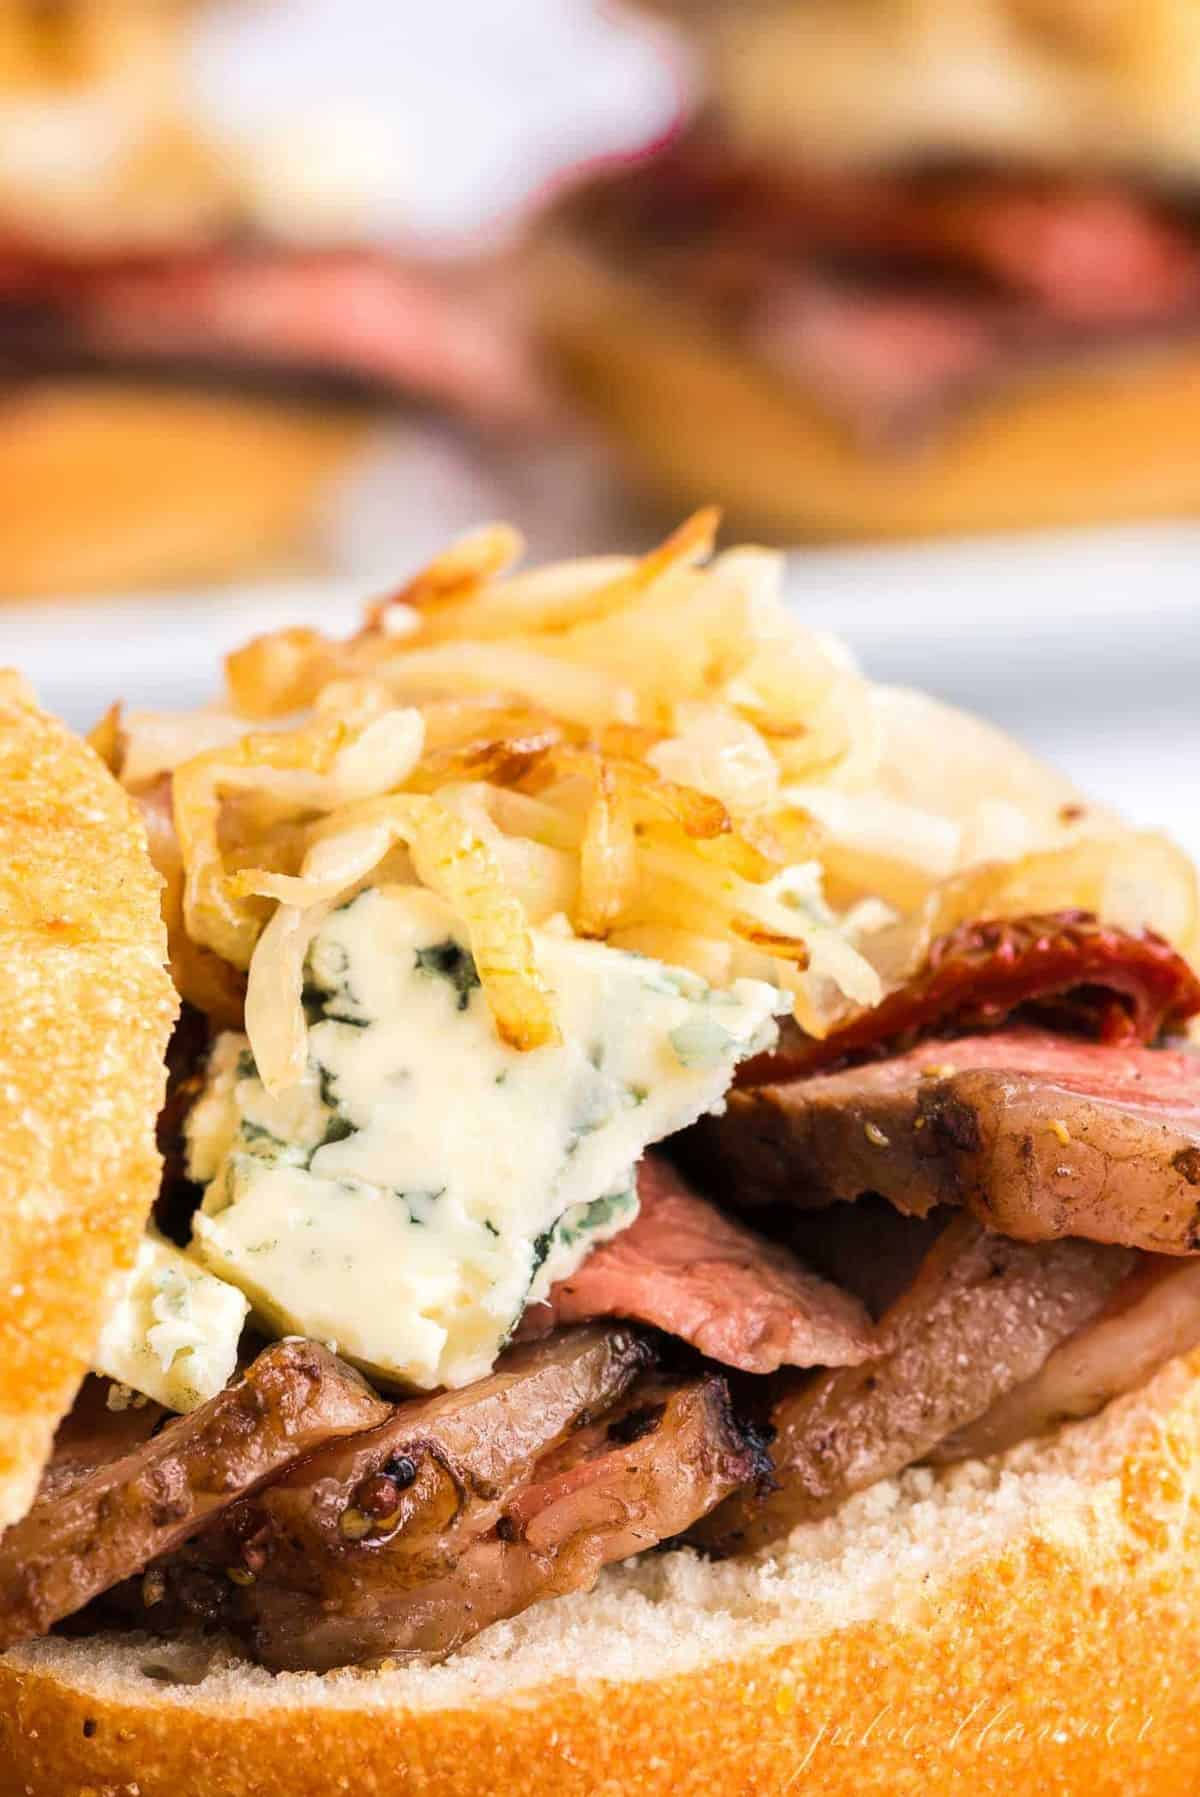 A steak sandwich with onion straws and cheese on top, top bun balanced to the side.